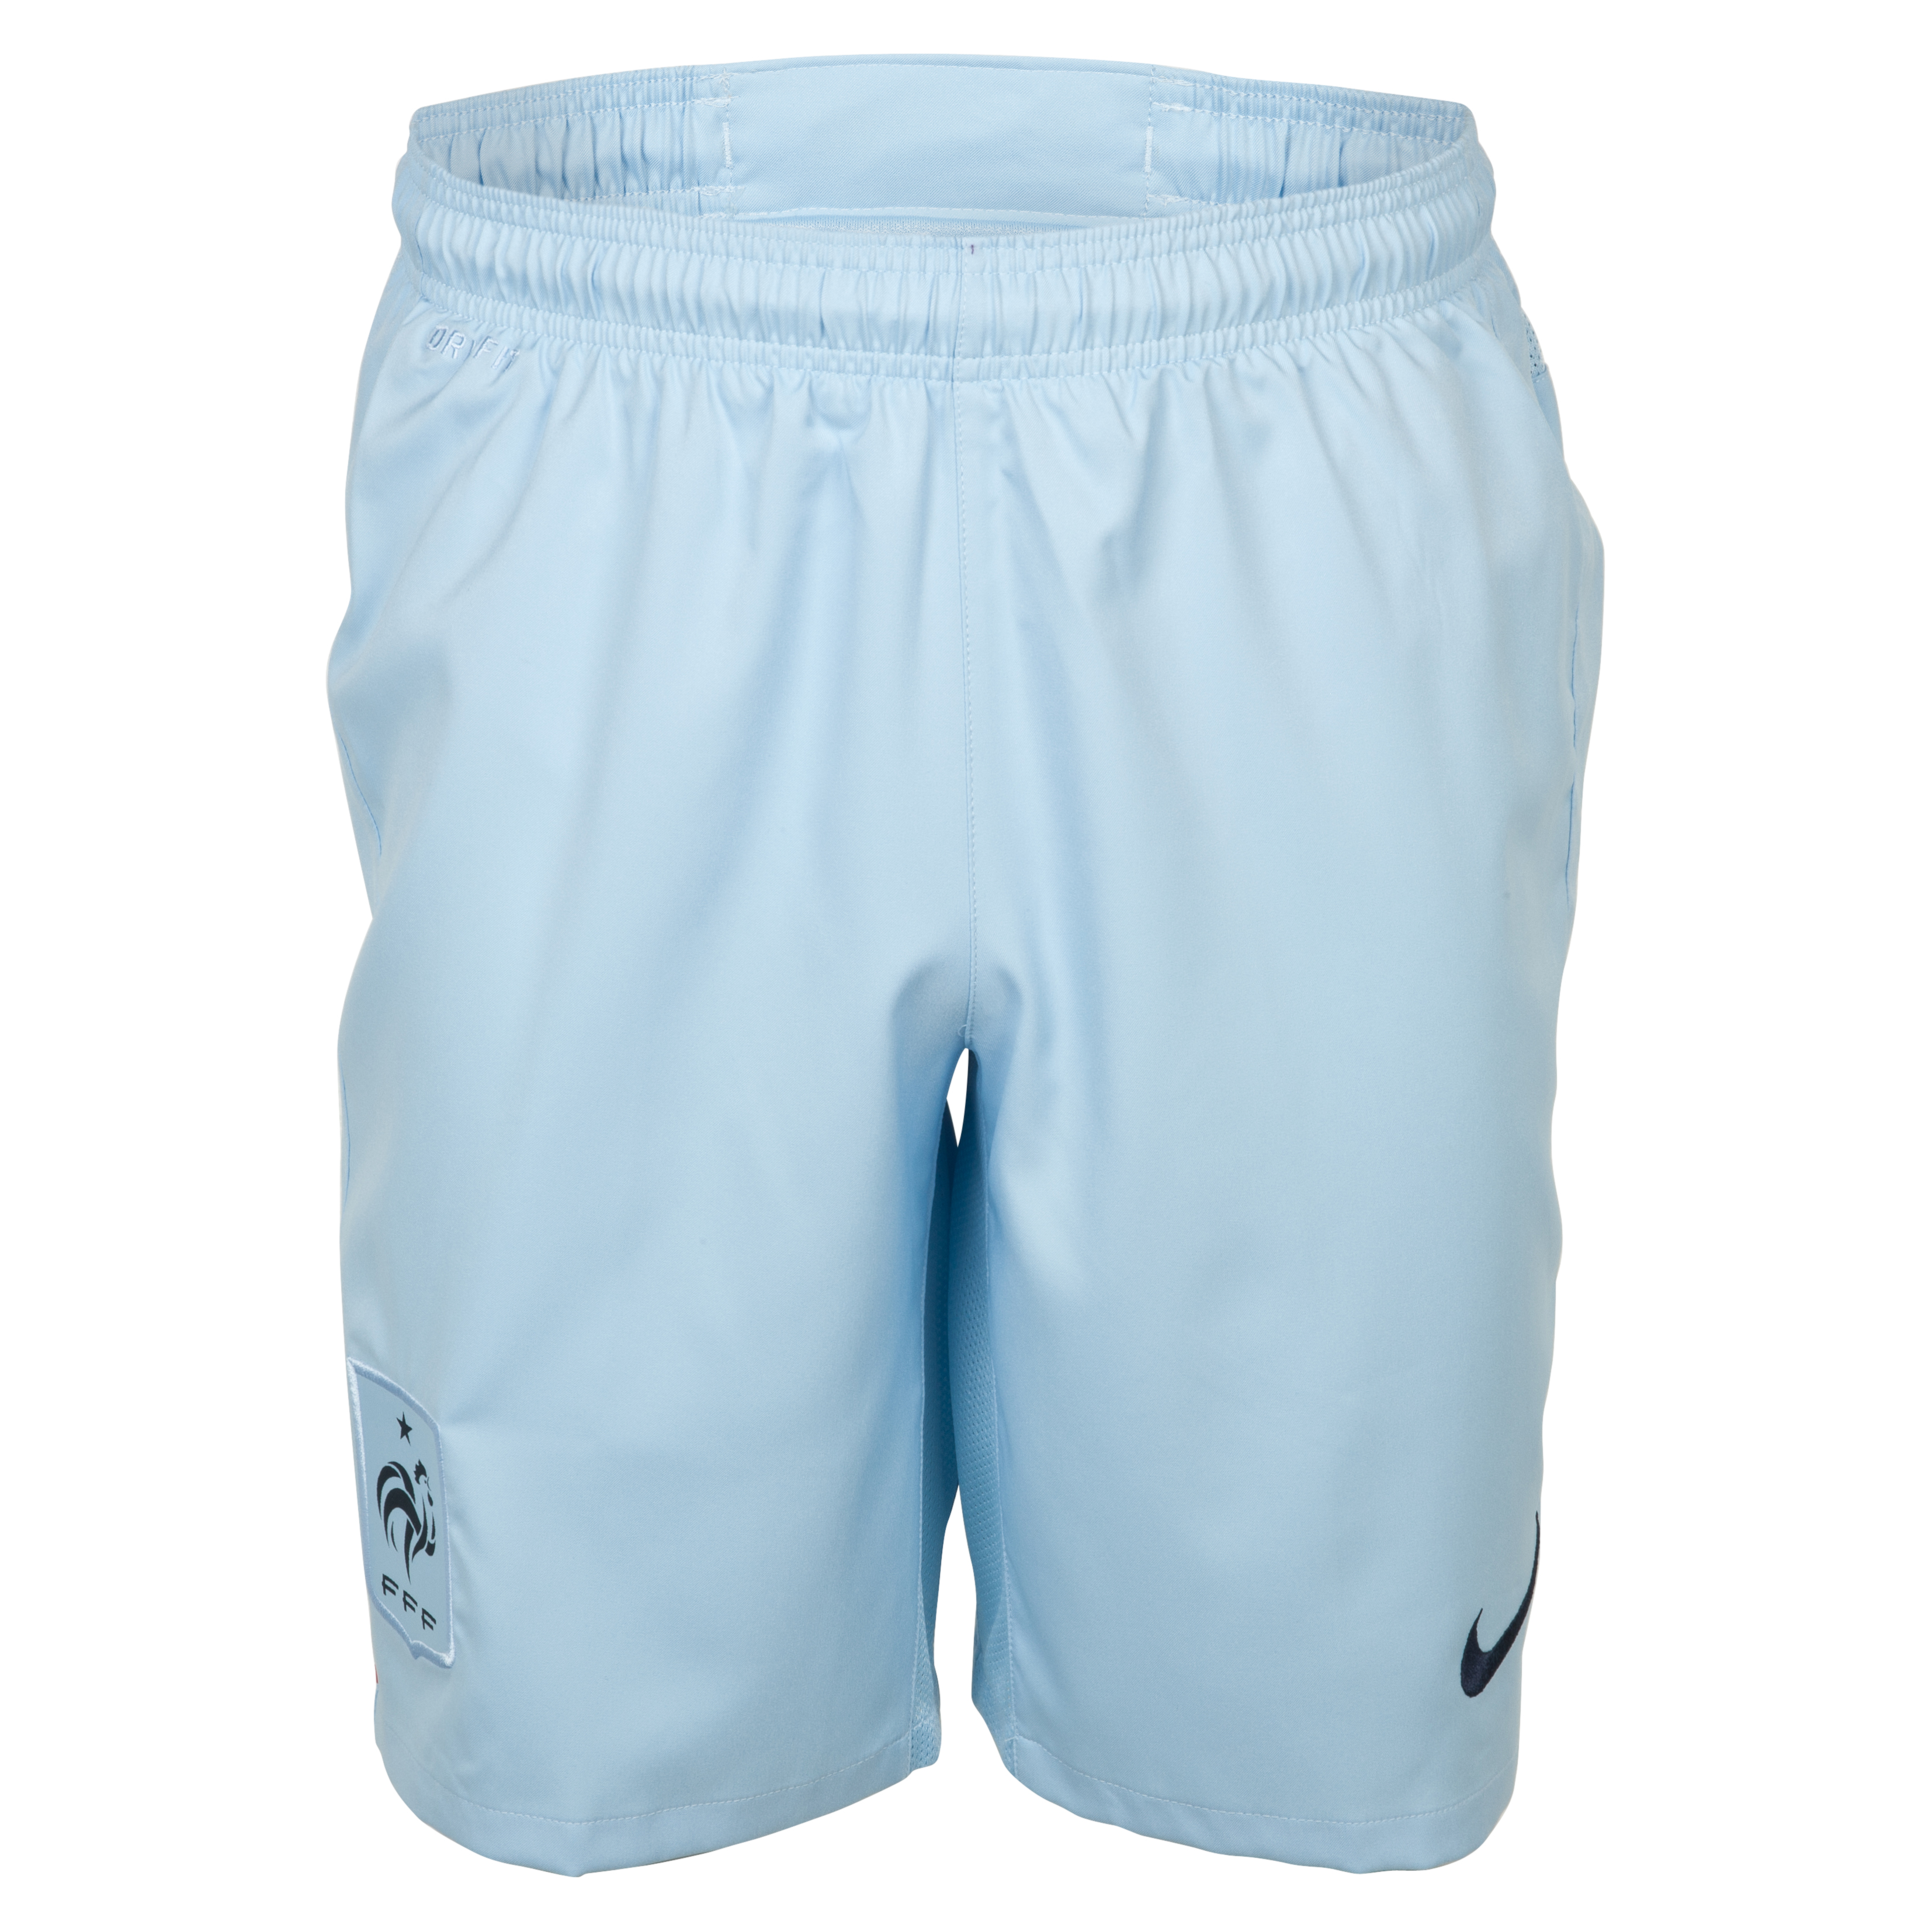 France Away Short 2013/14 - Ice Blue/Obsidian